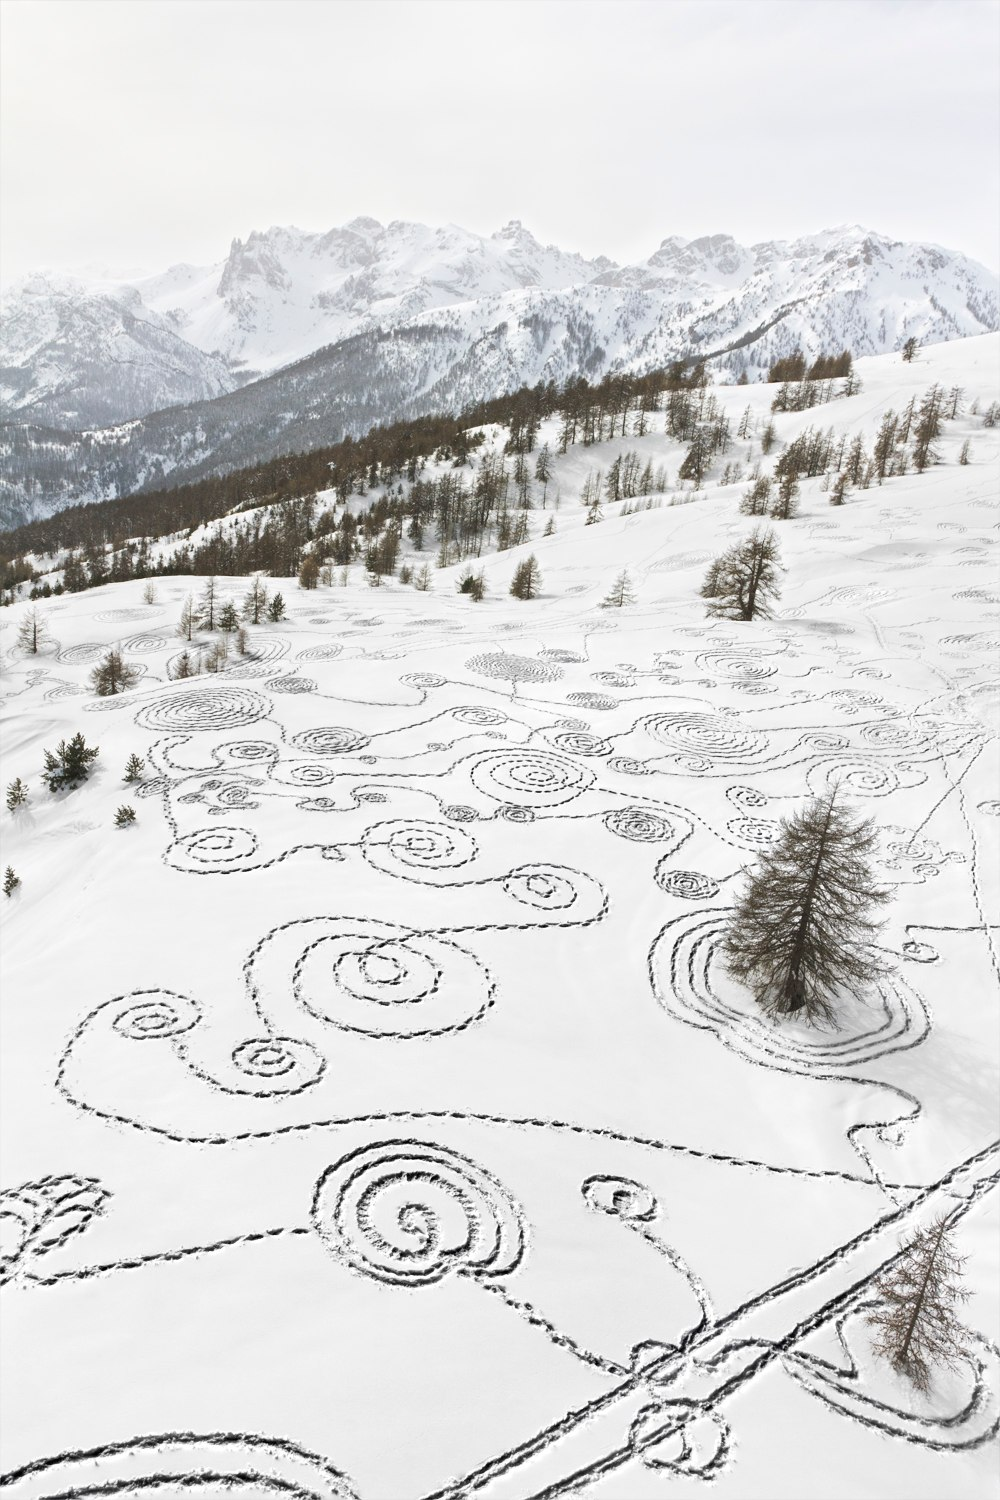 Sonja Hinrichsen Snow Drawings- Briancon, France - 0880, 2014 archival photo inkjet print on Hahnemuehle Fine Art paper 25.5 x 36 inches